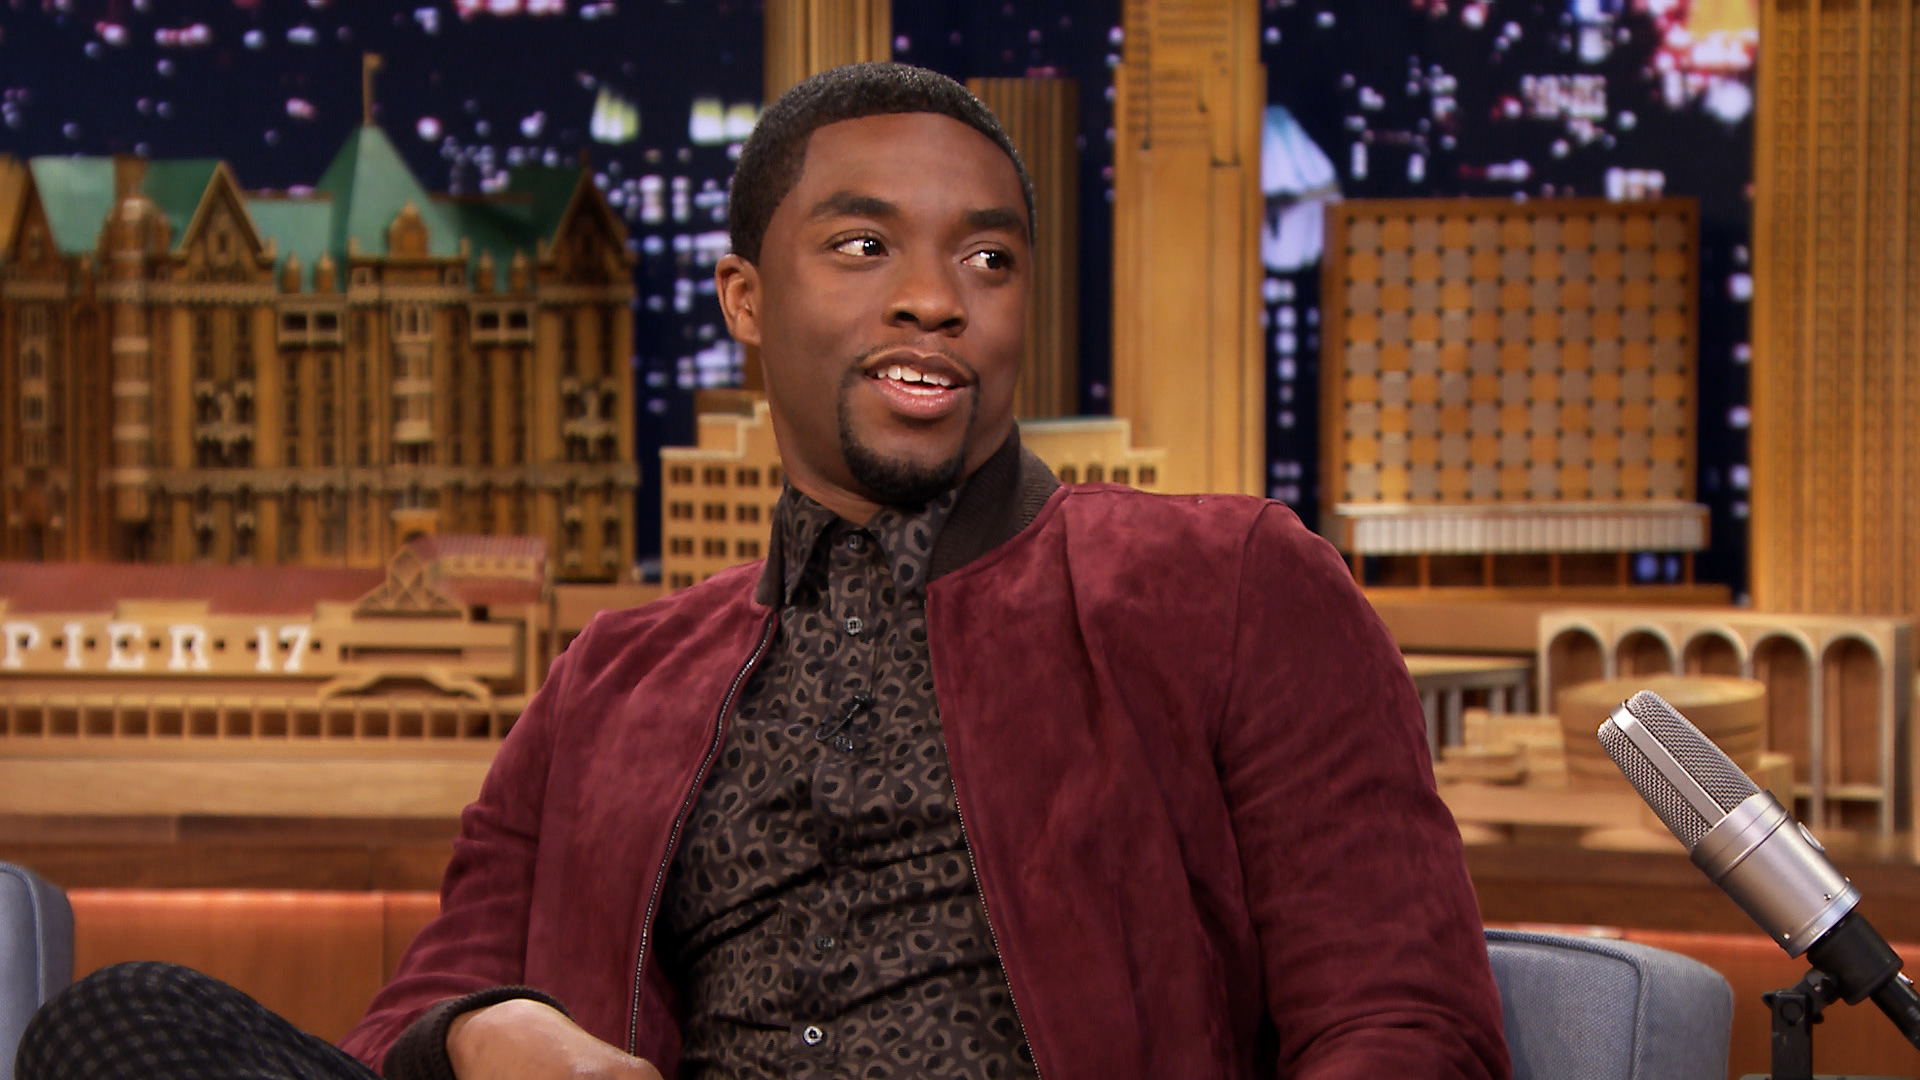 Chadwick Boseman Chadwick Boseman is a James